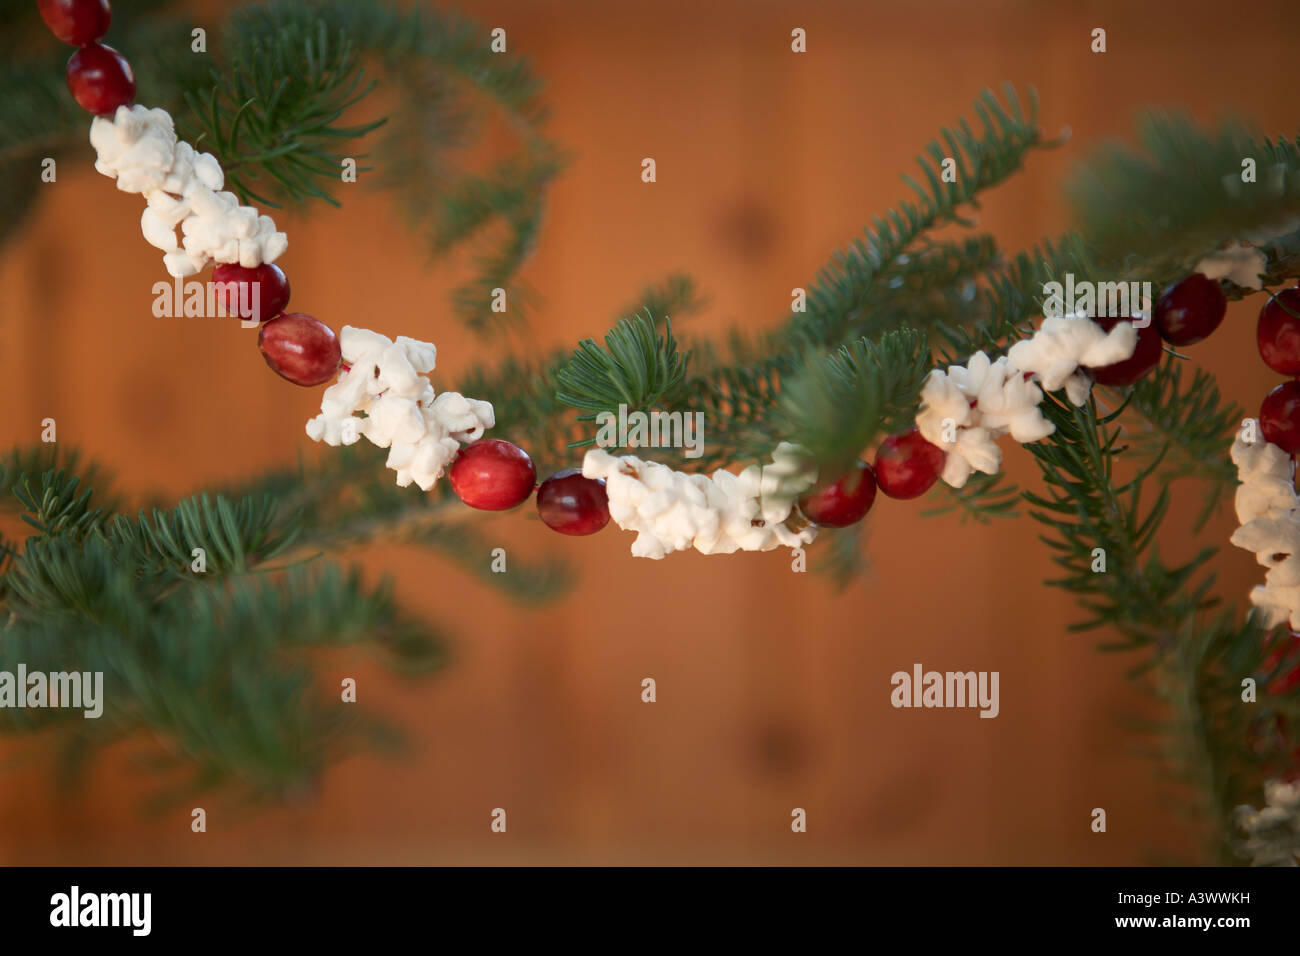 Popcorn And Cranberry Garland Hanging On Christmas Tree Stock Photo